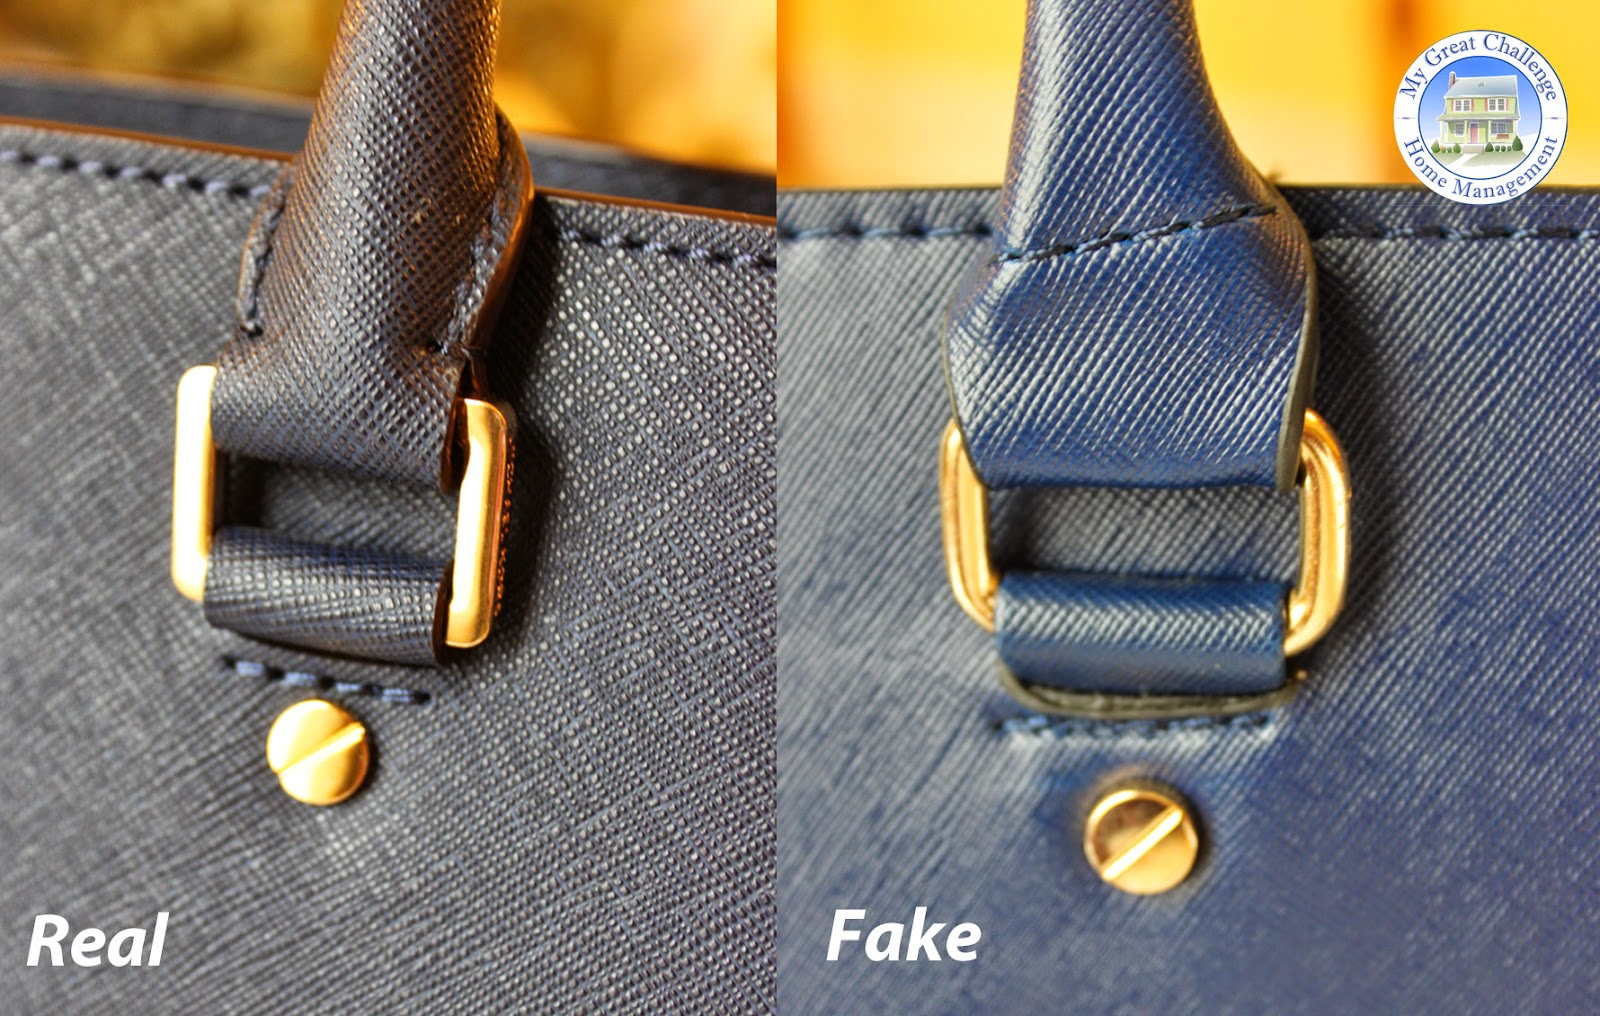 The Handle Is Closed At Base On Real Bag While Fake One Provides A Simple Fold Stiff And Filled With